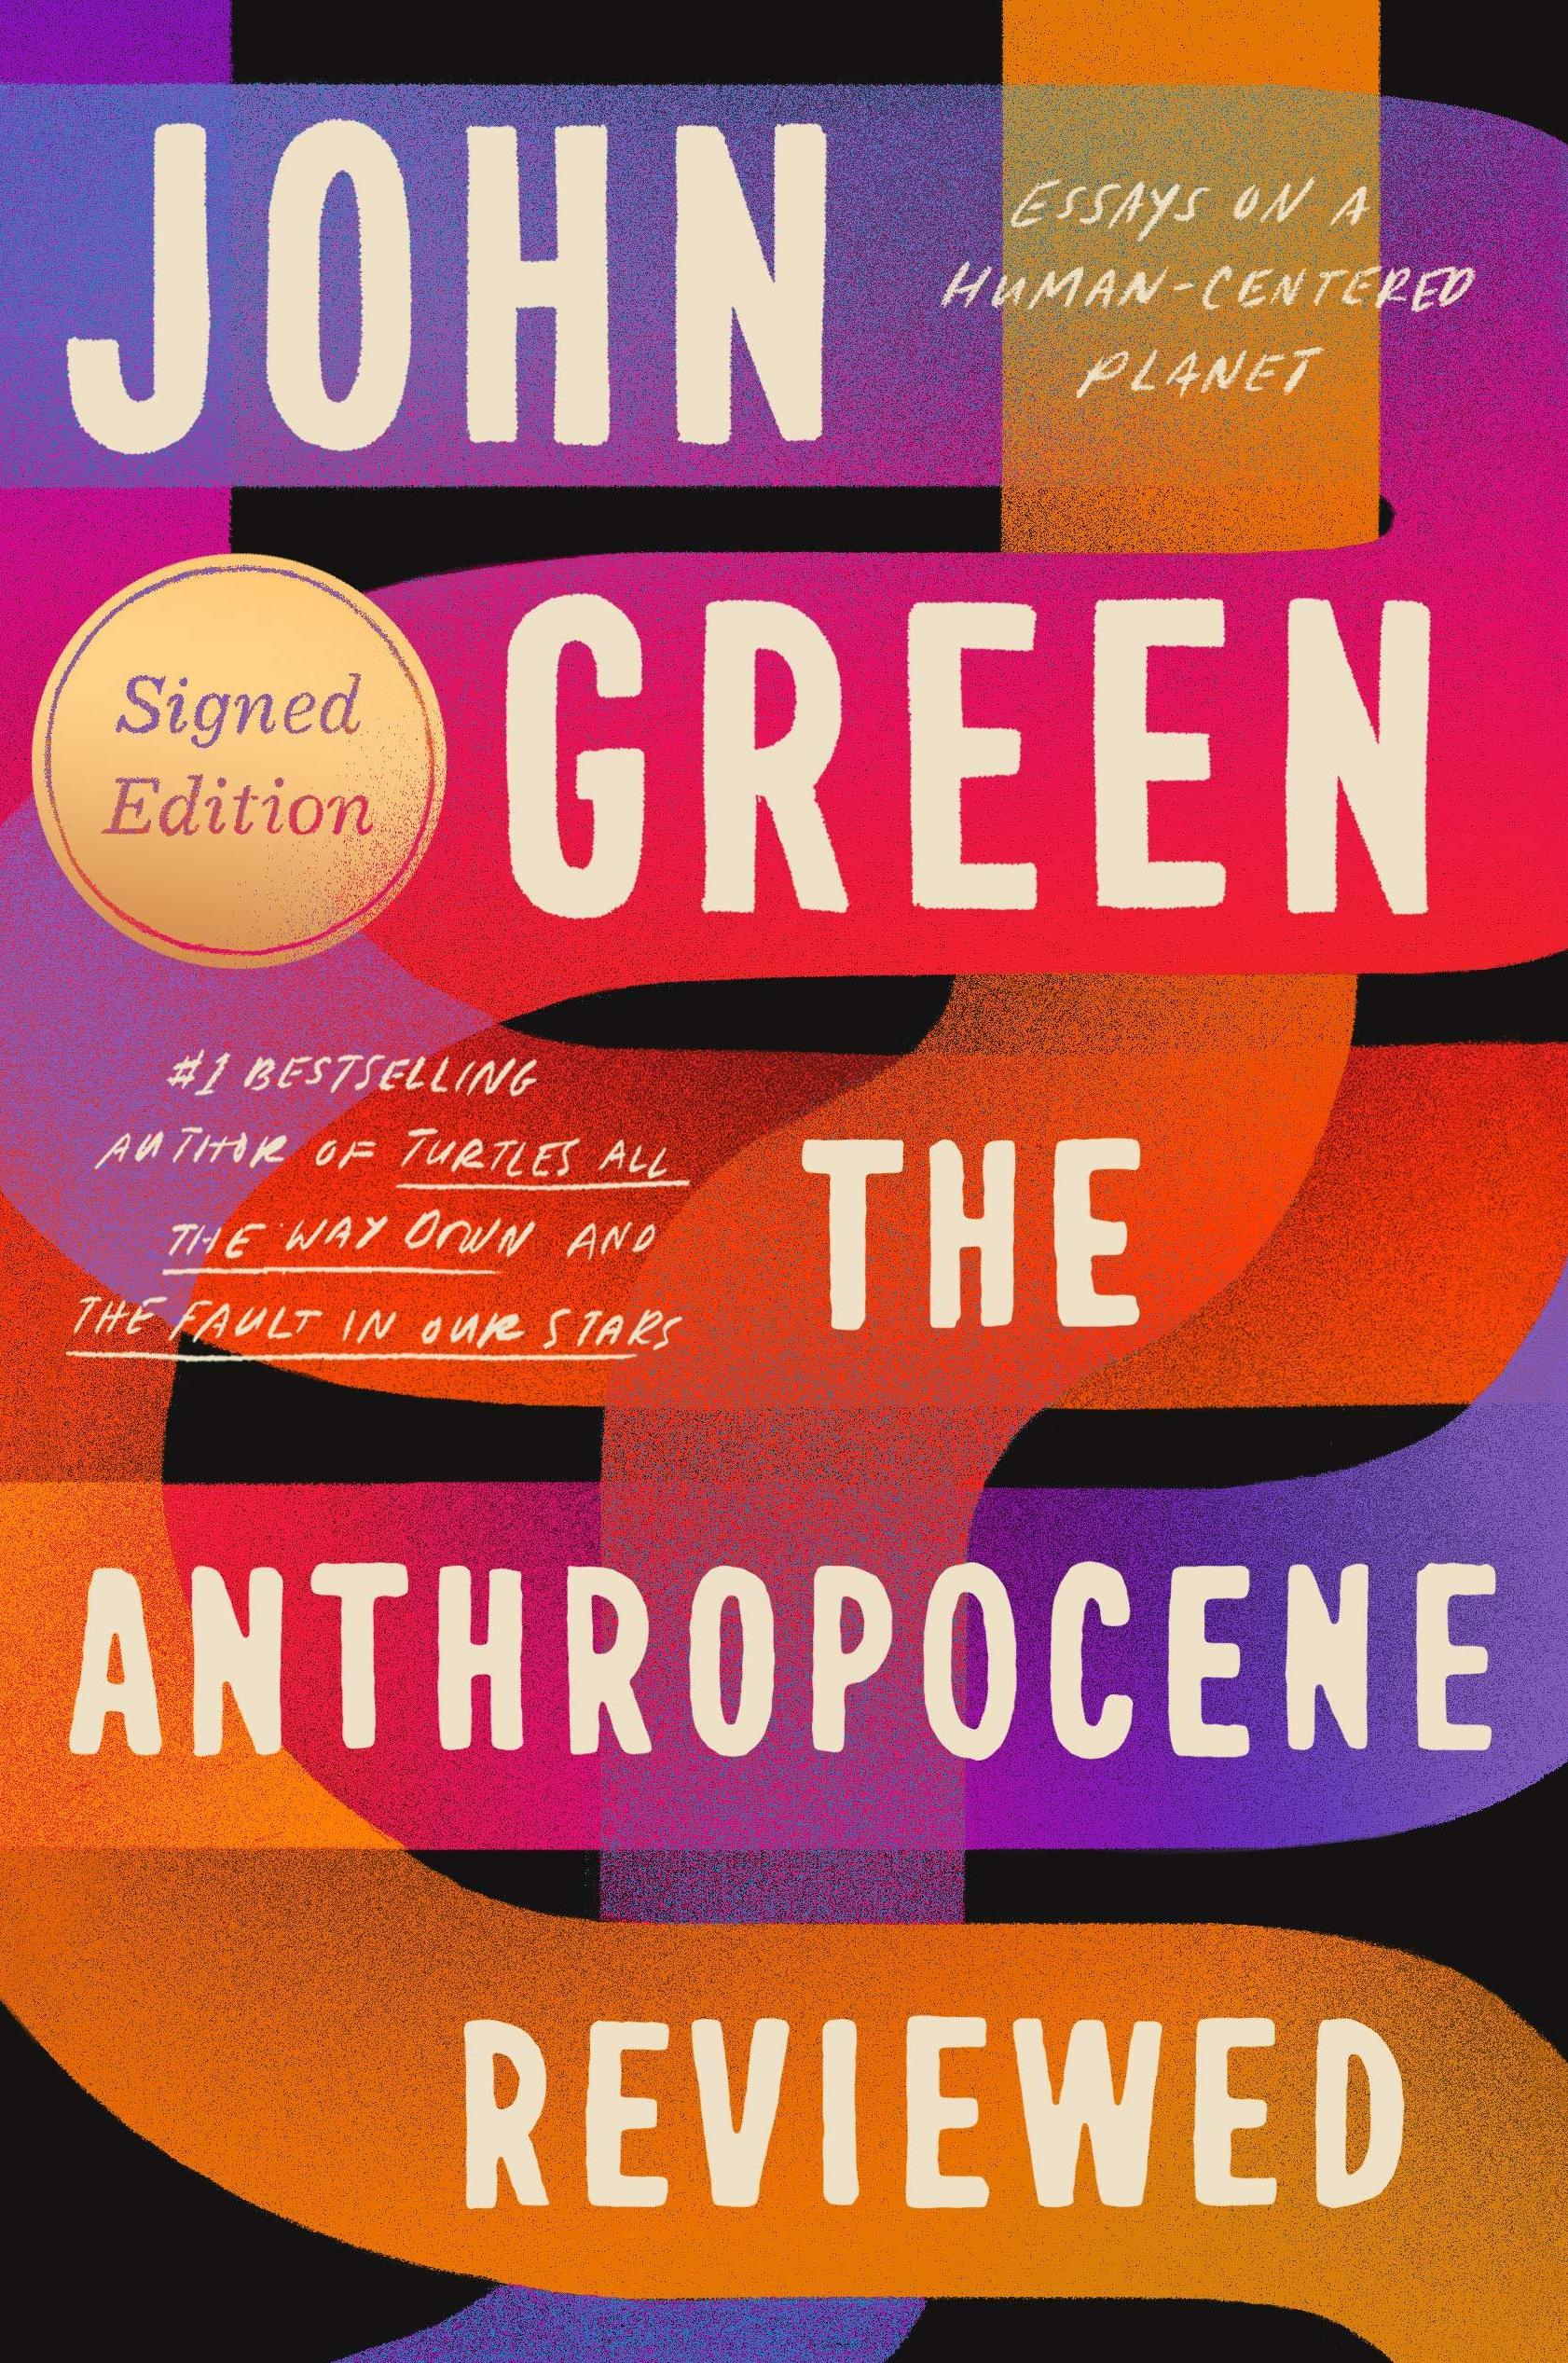 Author John Green Explores How To Live In Uncertainty In 'The Anthropocene Reviewed'